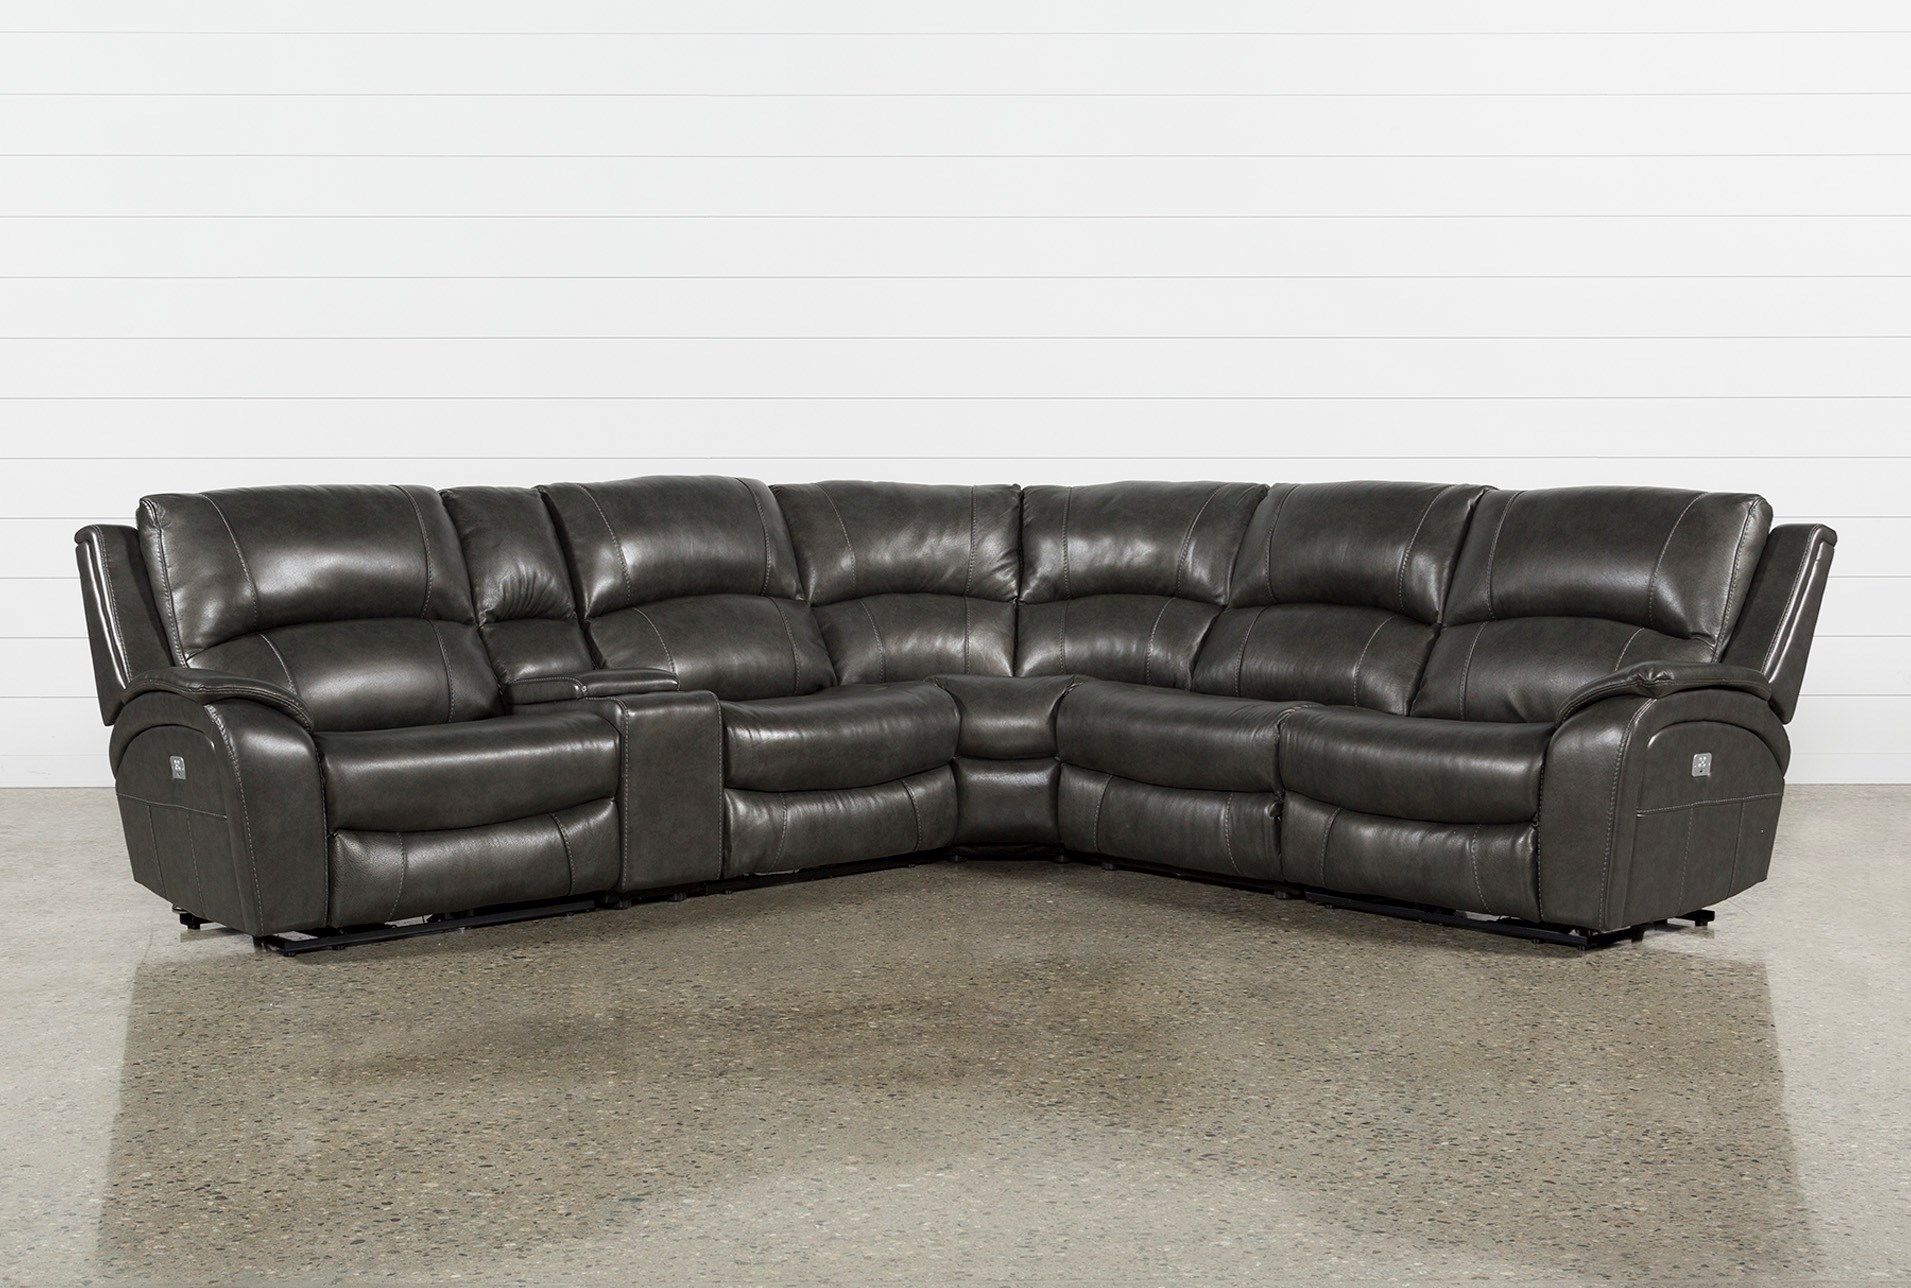 Travis dk grey leather 6 piece power reclining sectional w pwr hdrst usb qty 1 has been successfully added to your cart